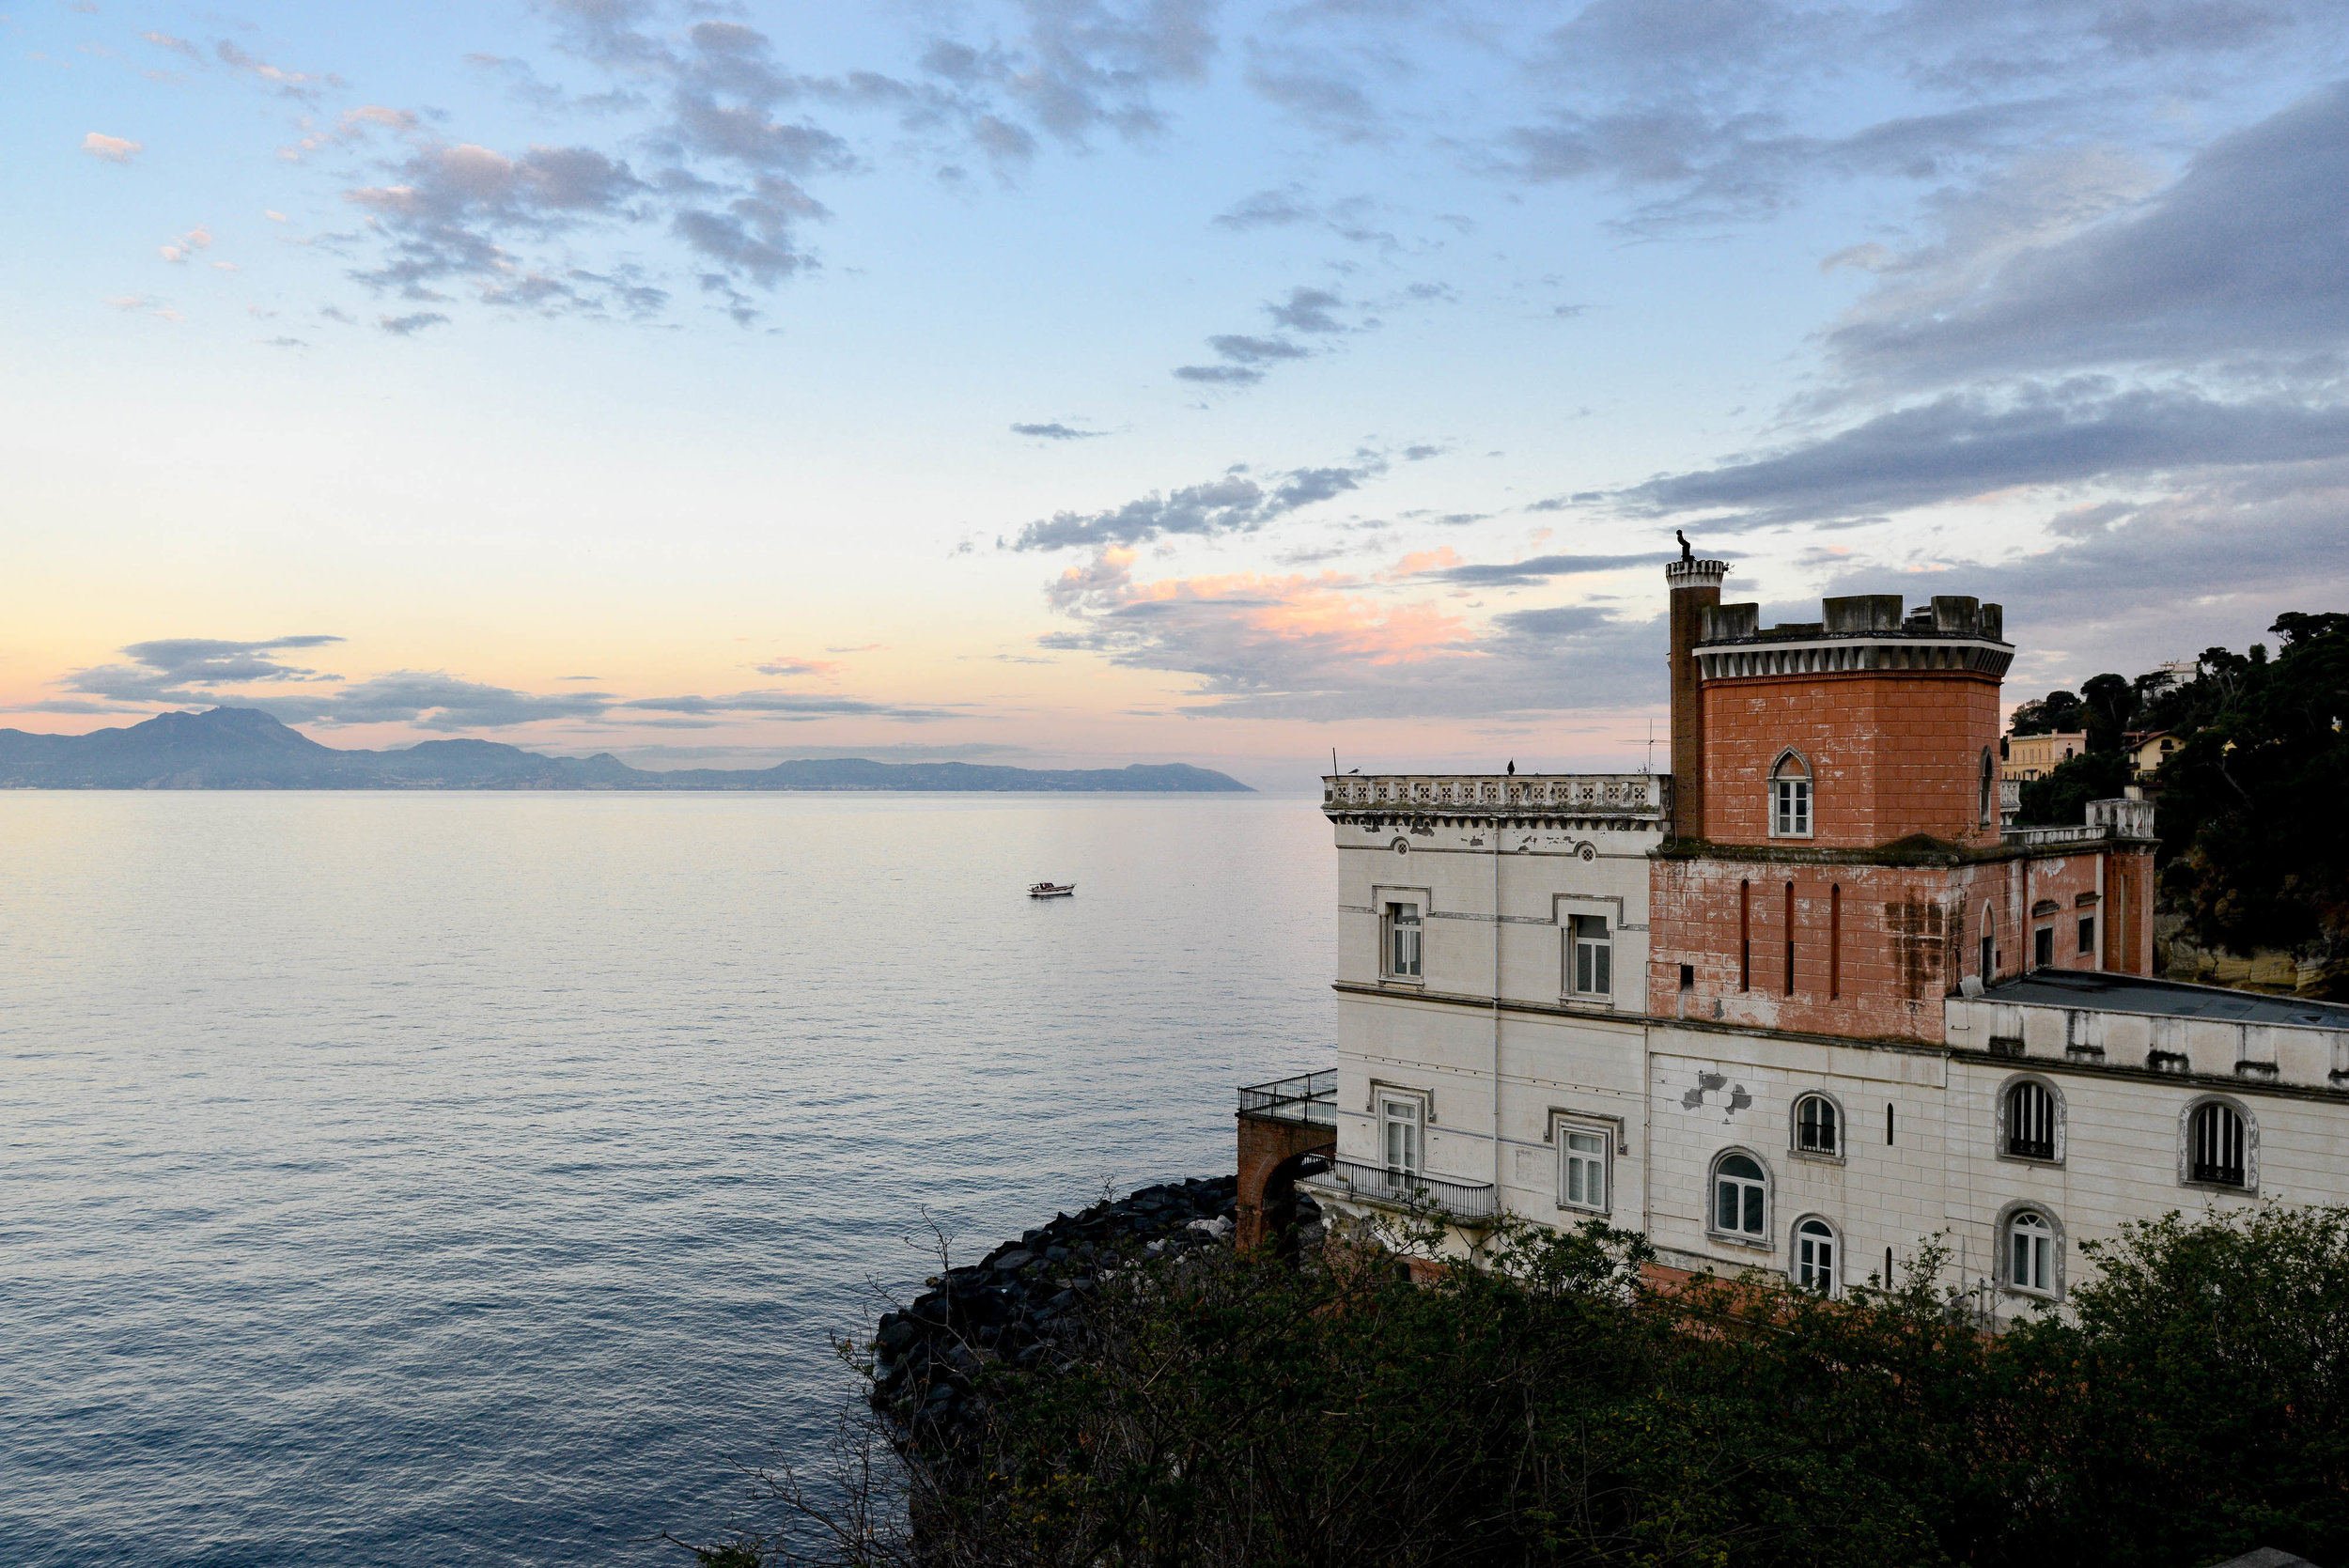 View From the Tower | Posillipo, Italy | Lauren L Caron © 2018